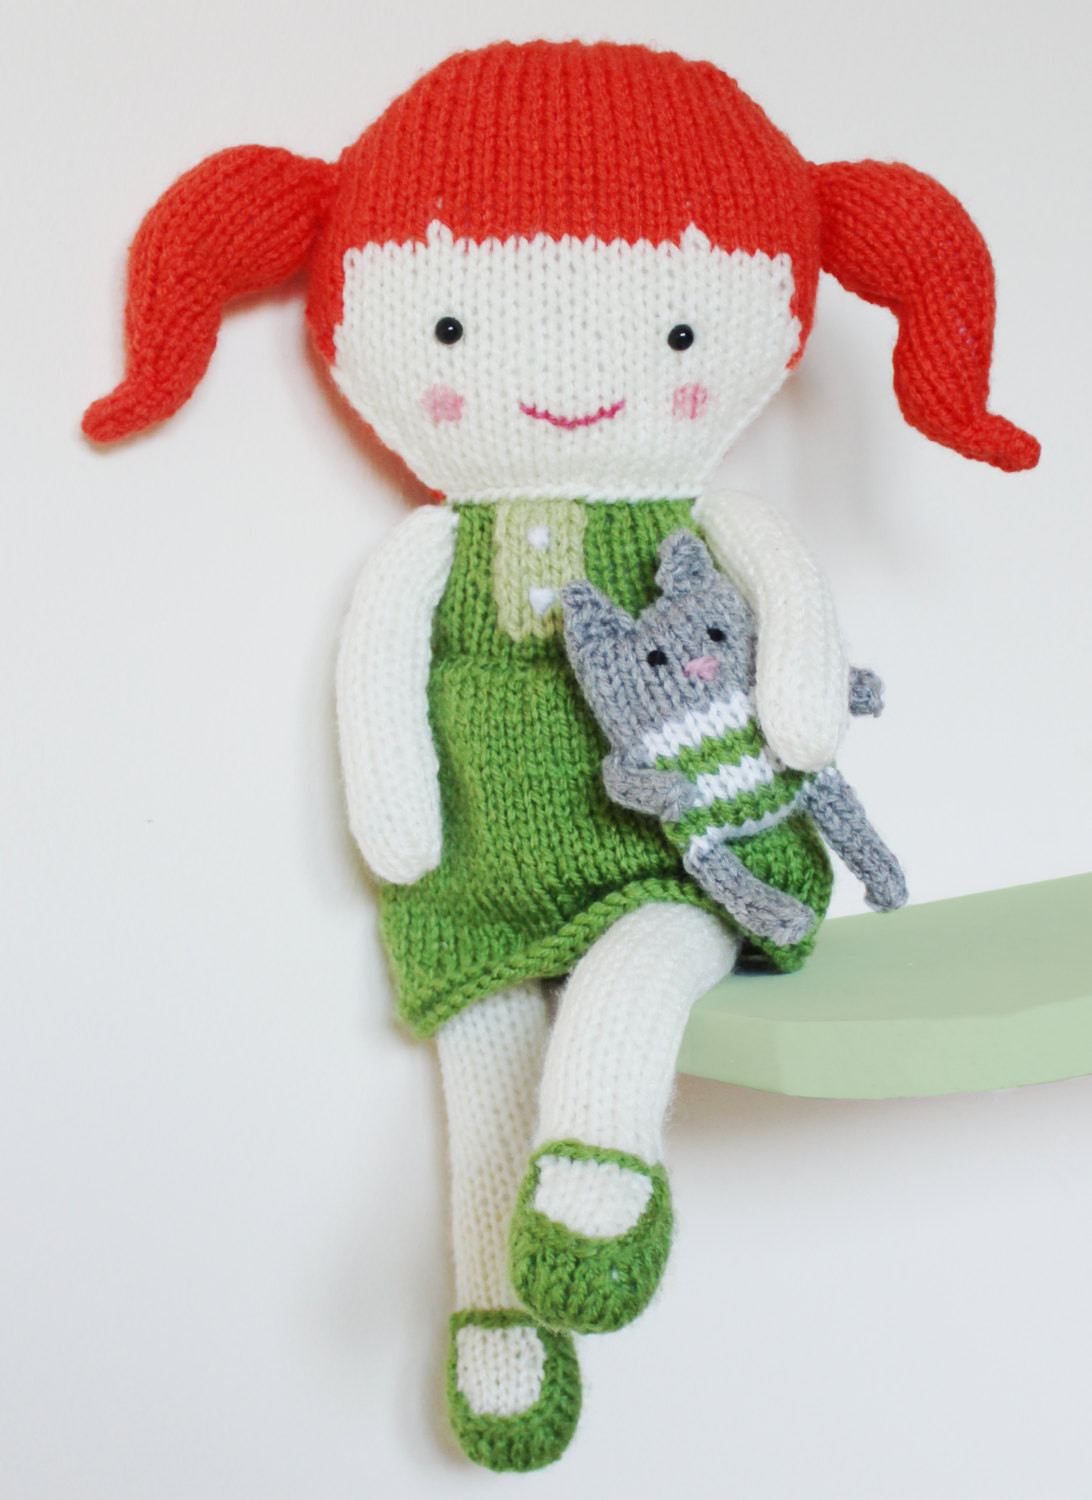 Awesome Doll Knitting Pattern toy Rag Doll Pattern Pdf Olive & Pea Knitted Doll Patterns Of Lovely 40 Models Knitted Doll Patterns